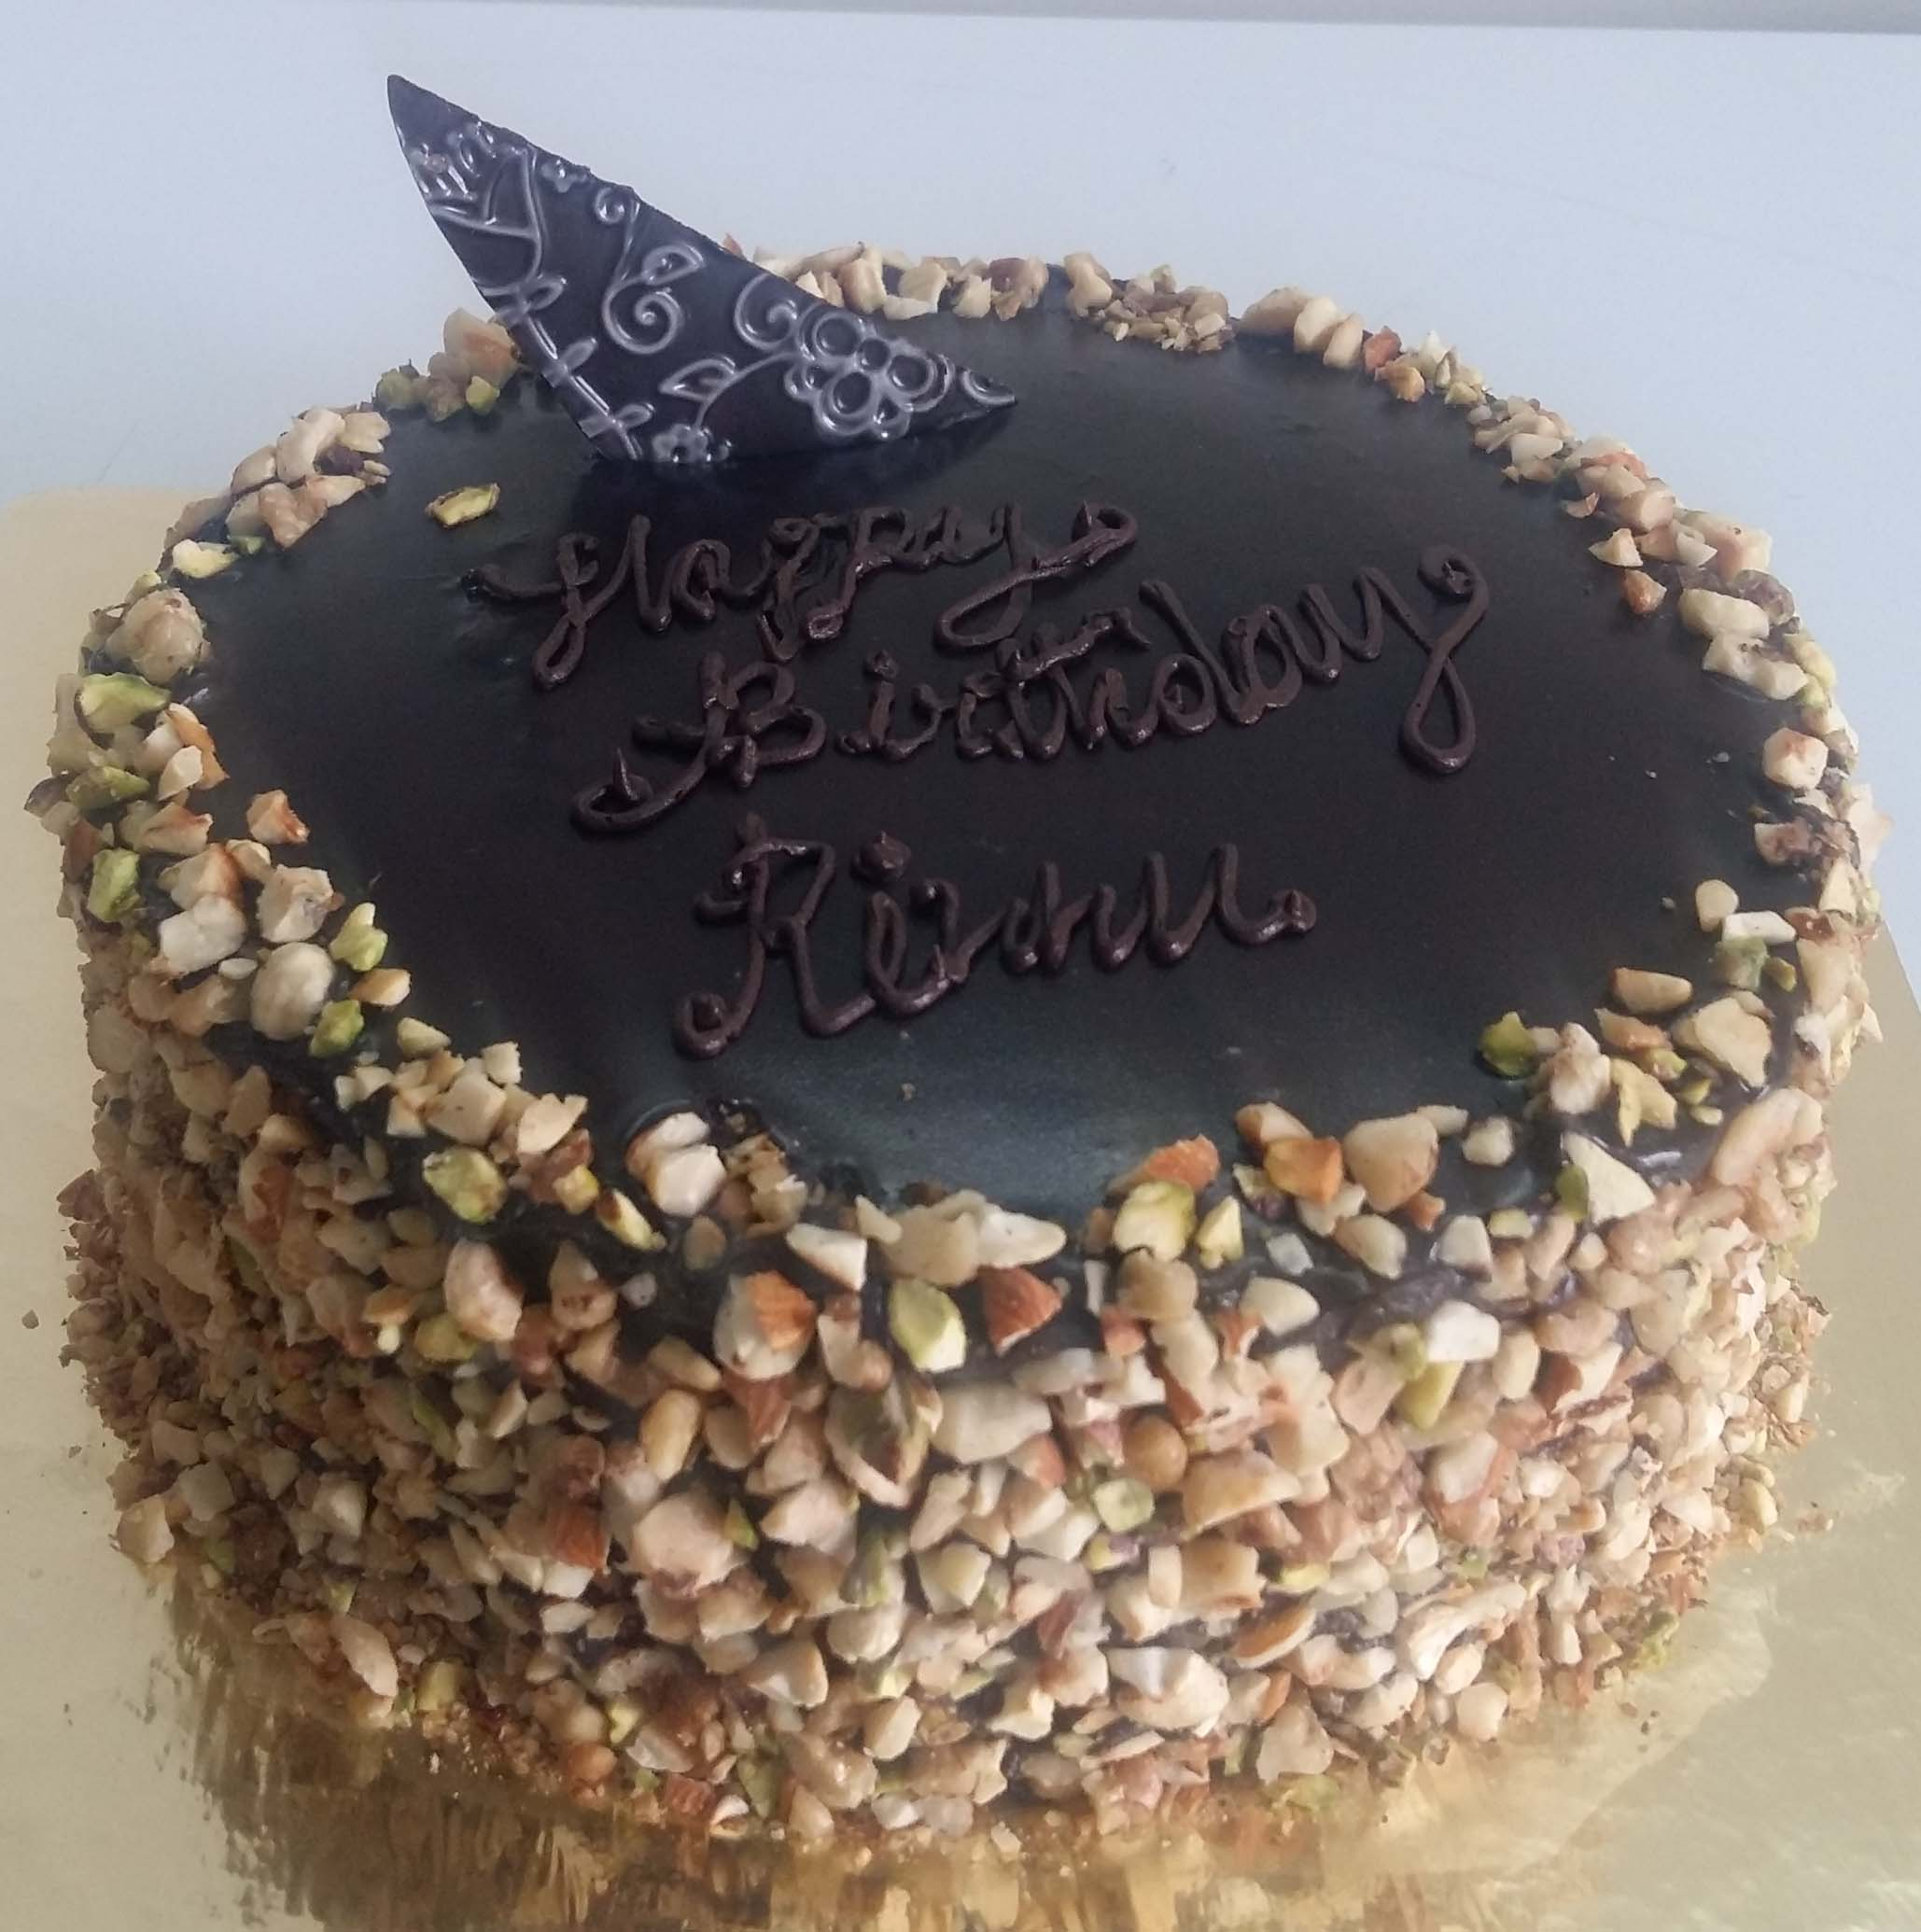 Chocolate Nut Cake Order Online Bangalore Chocolate Nut Cake Delivery